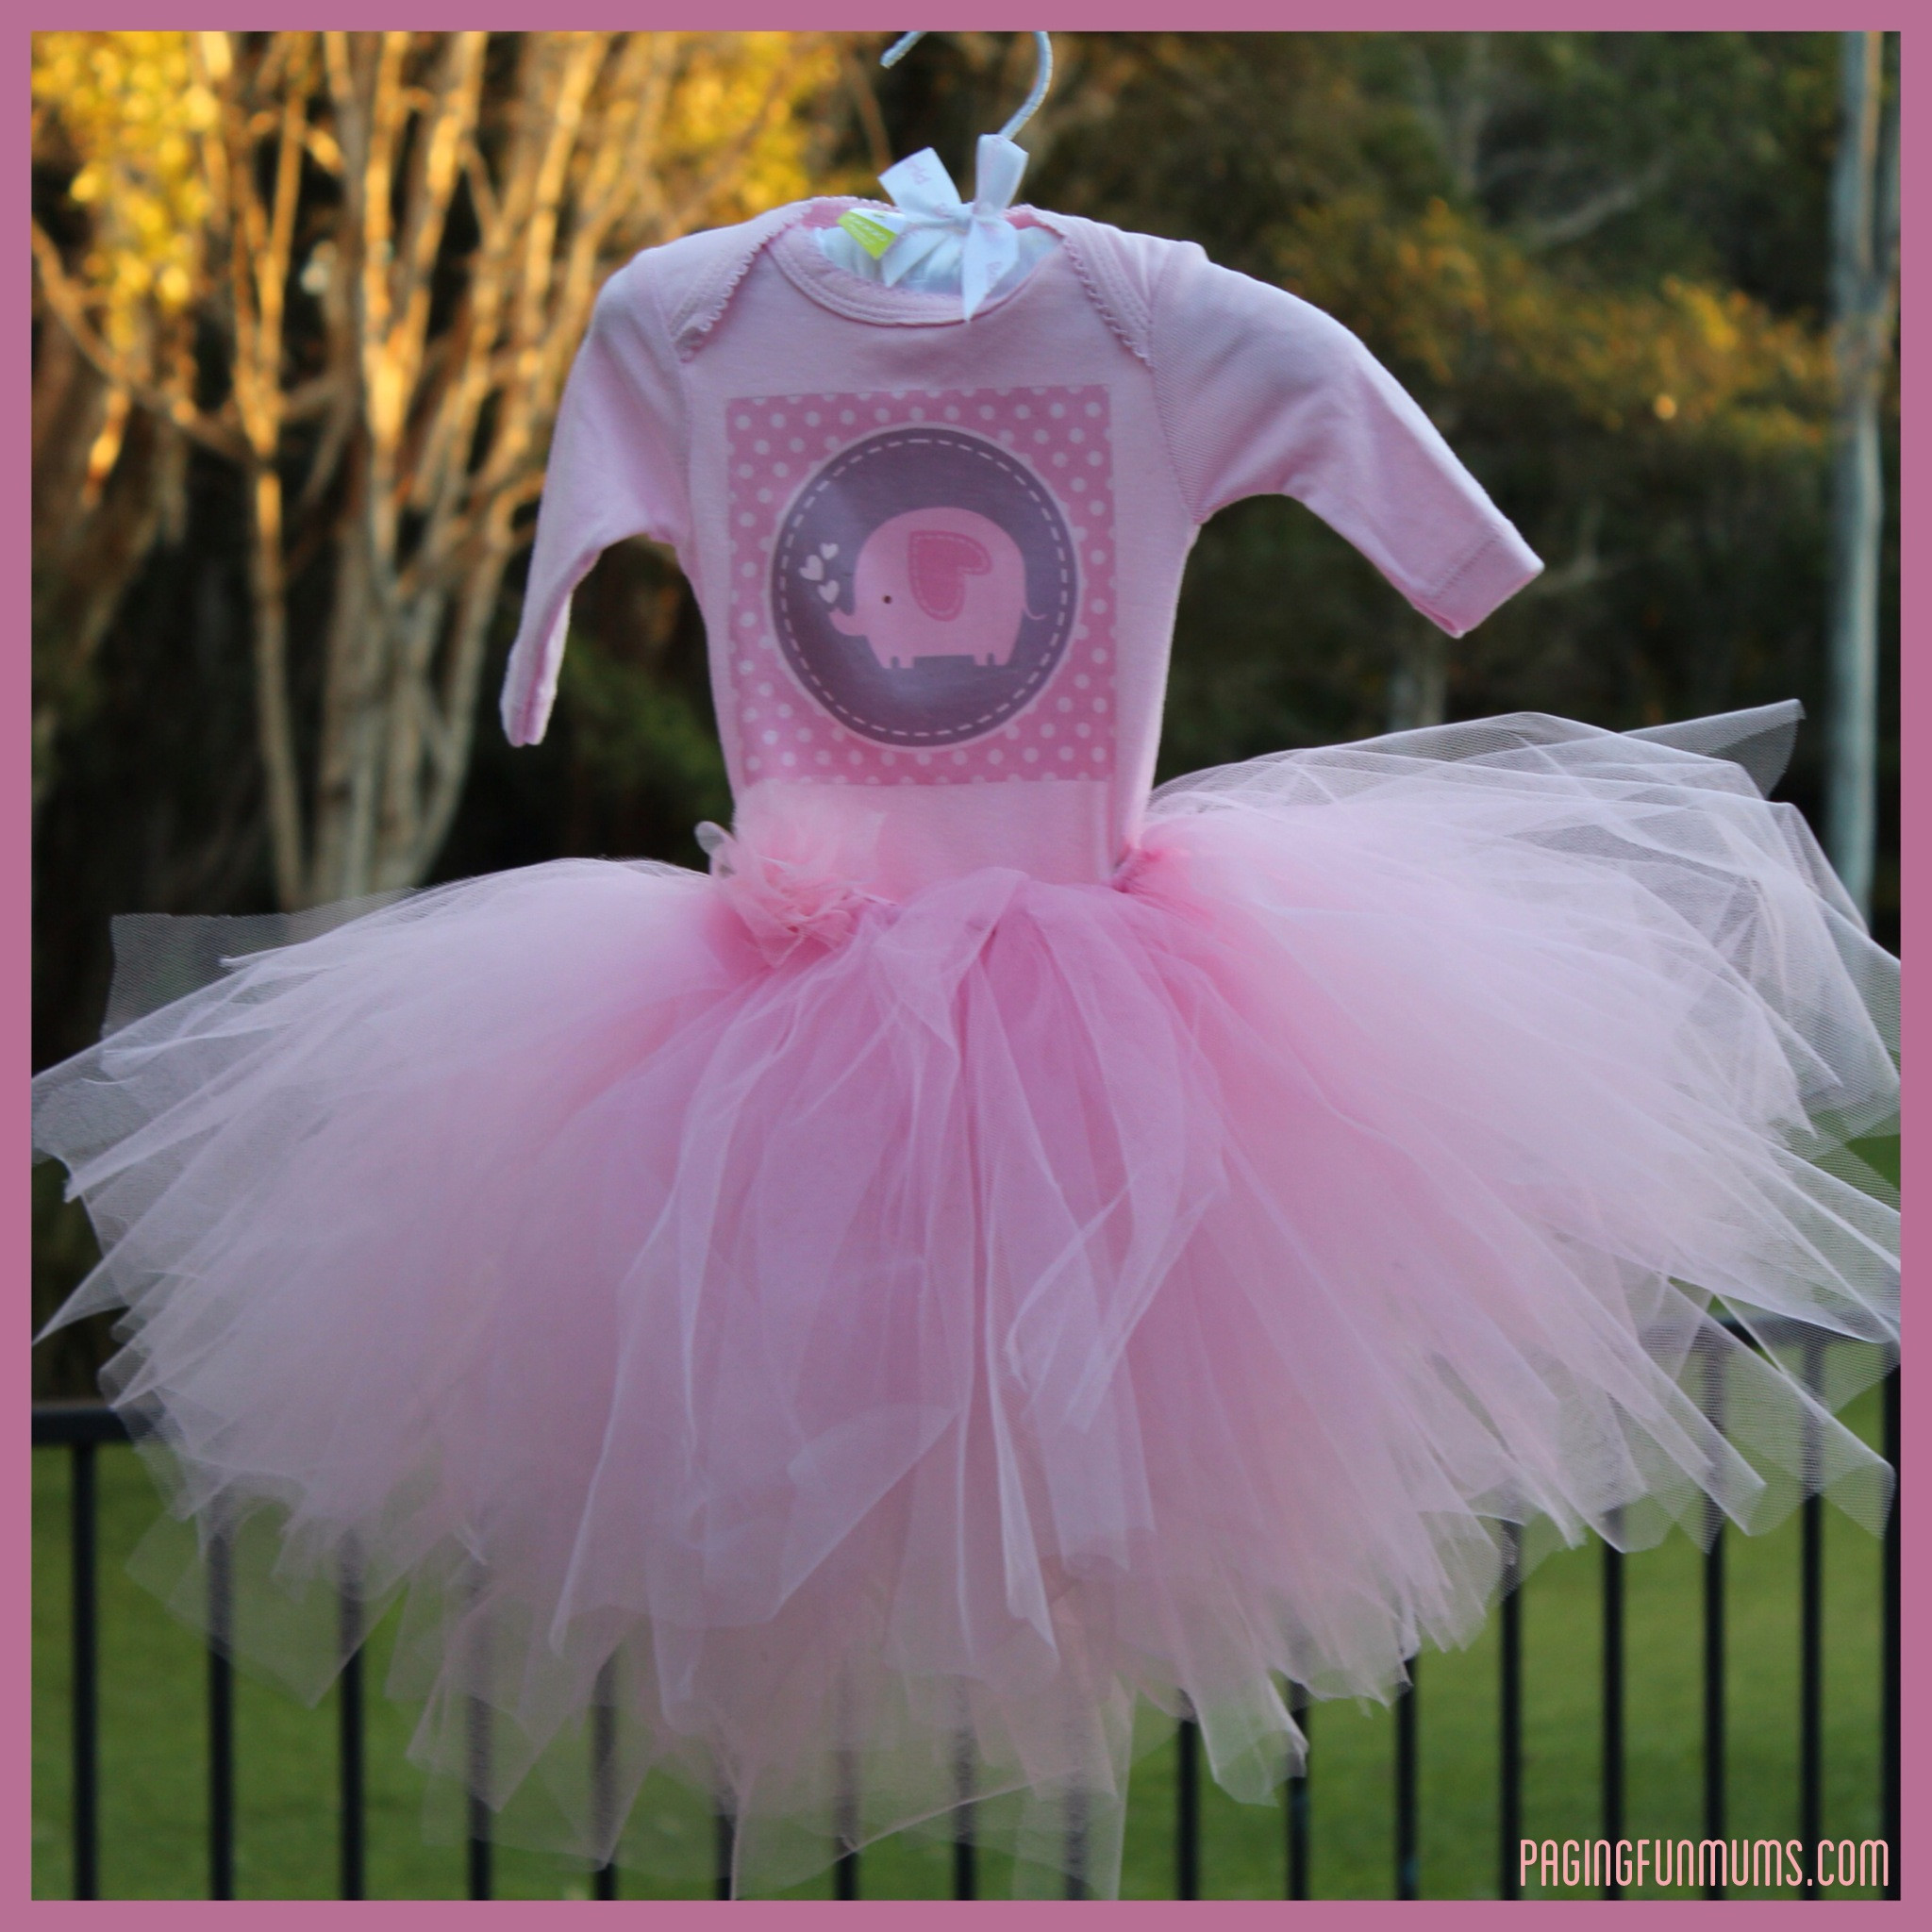 Best ideas about DIY Baby Tutu . Save or Pin DIY Baby Tutu No Sewing Required Now.